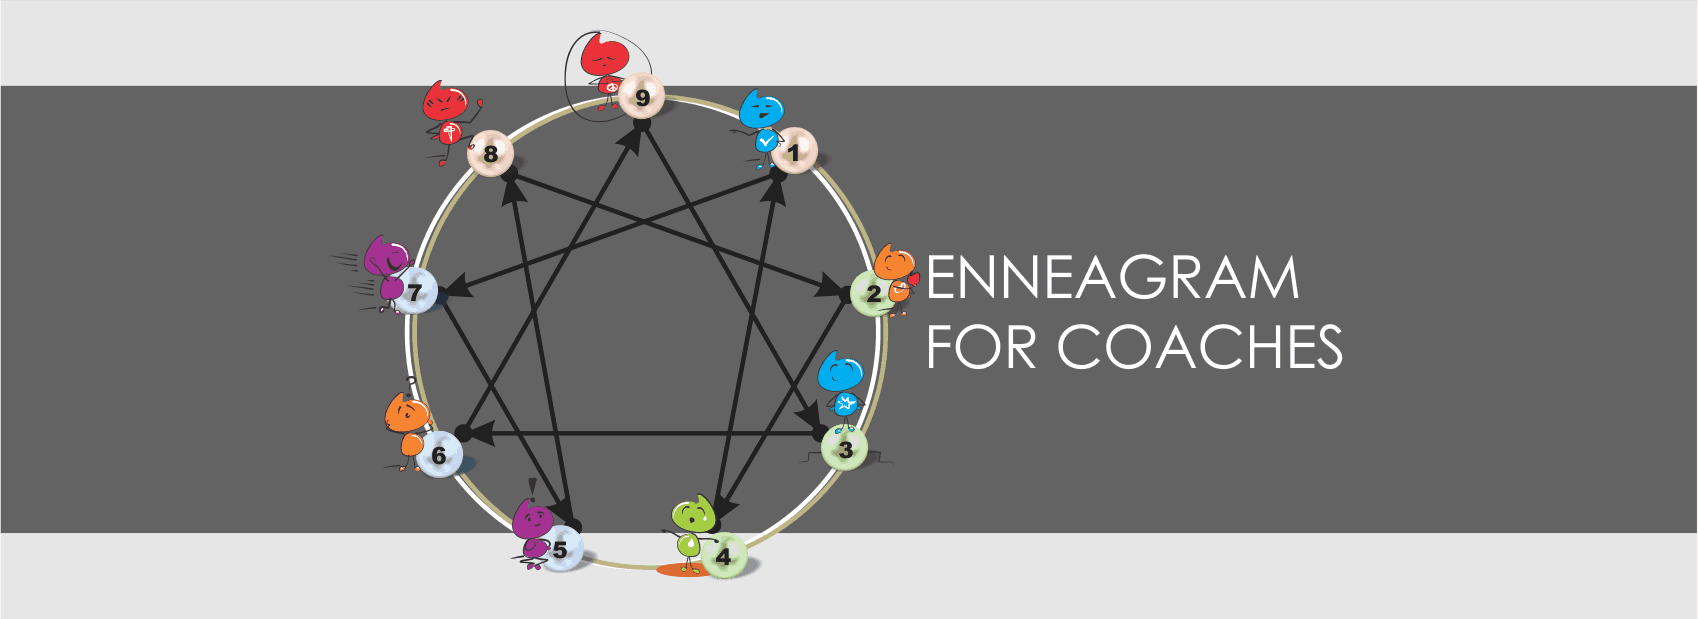 Why coaches need the ennegram